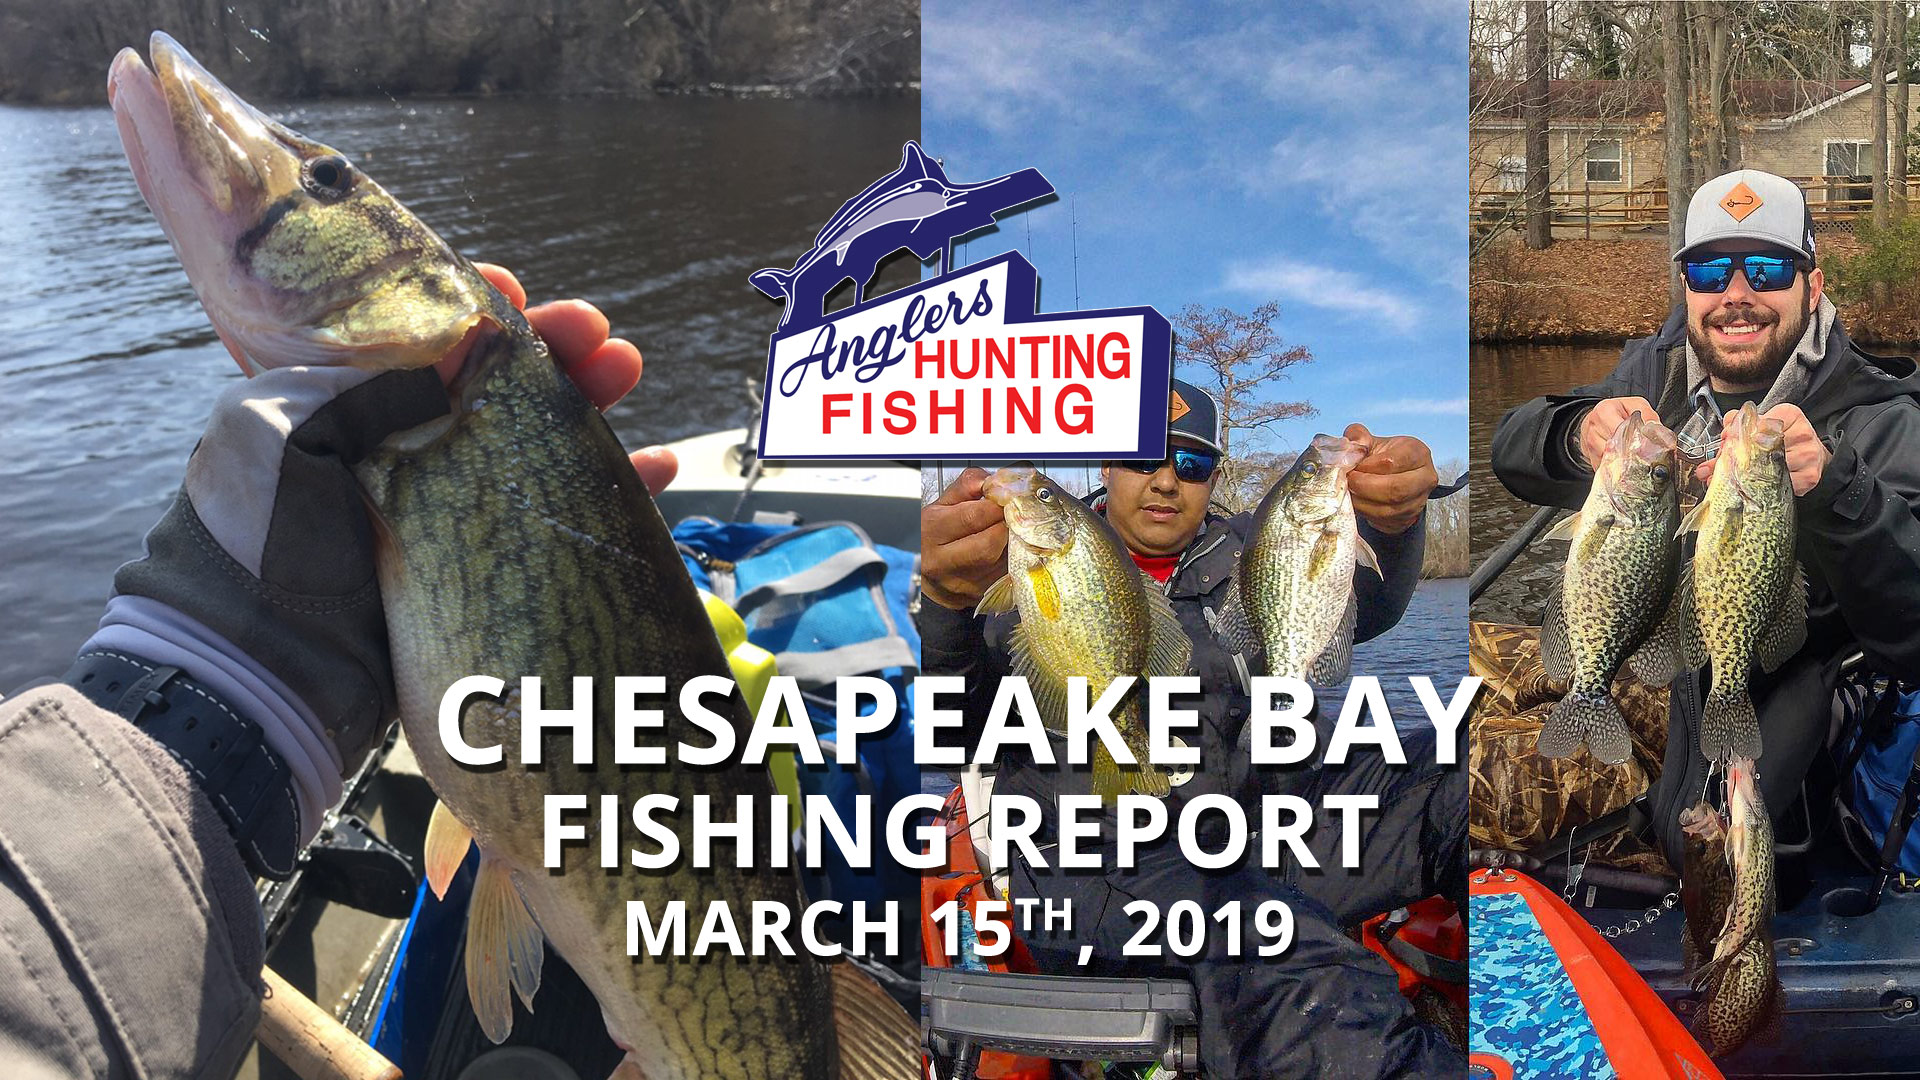 Chesapeake Bay Fishing Report - March 15th, 2019